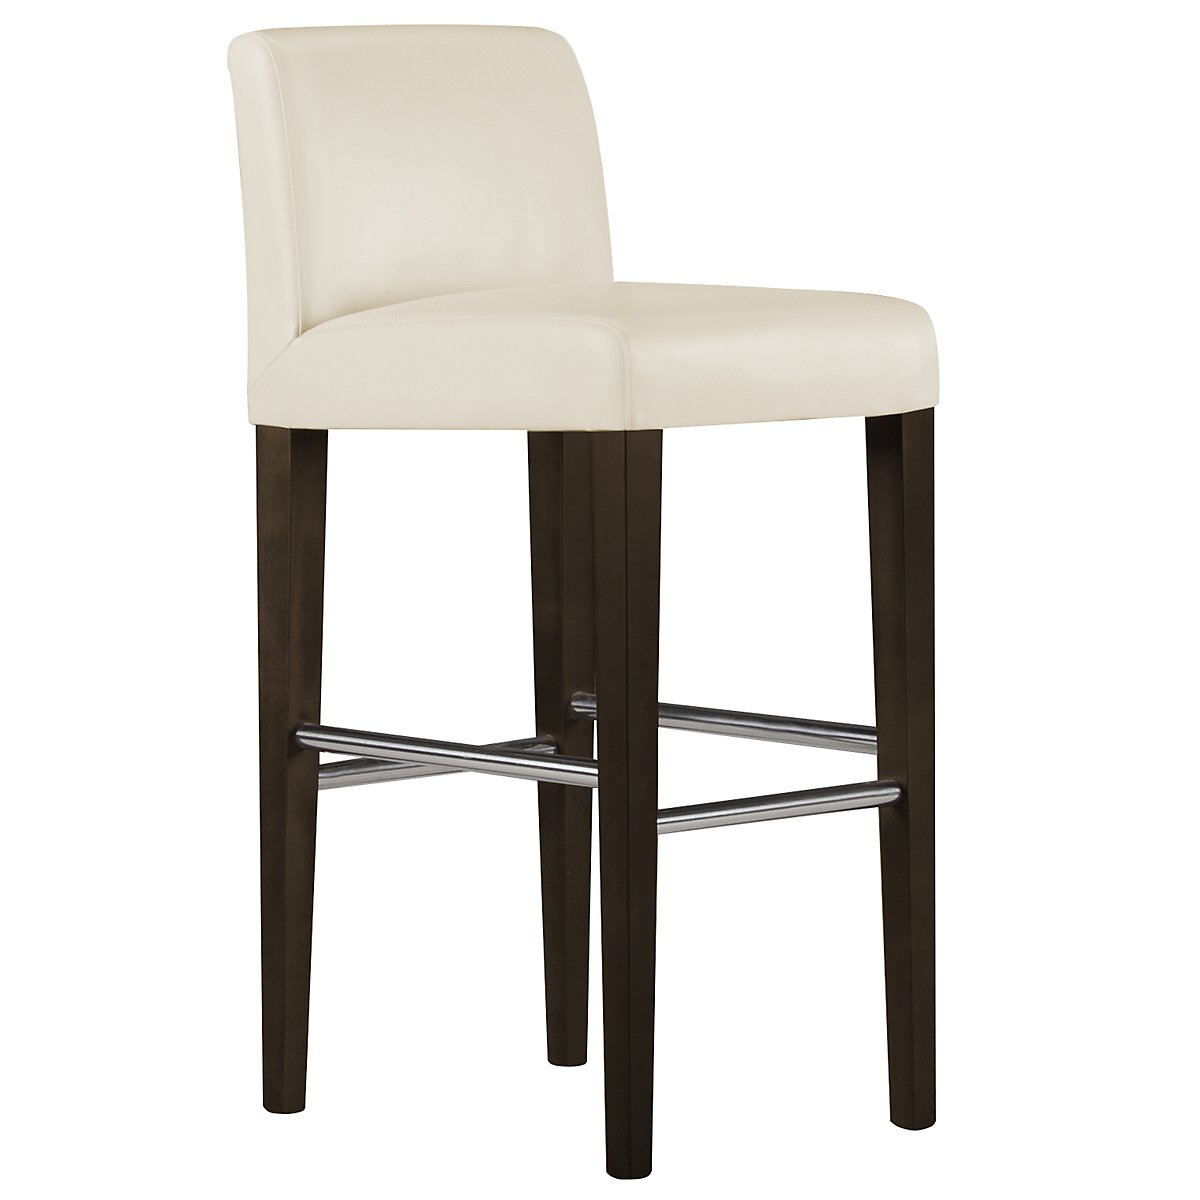 "Kyle2 Lt Beige Bonded Leather 30"" Upholstered Barstool"